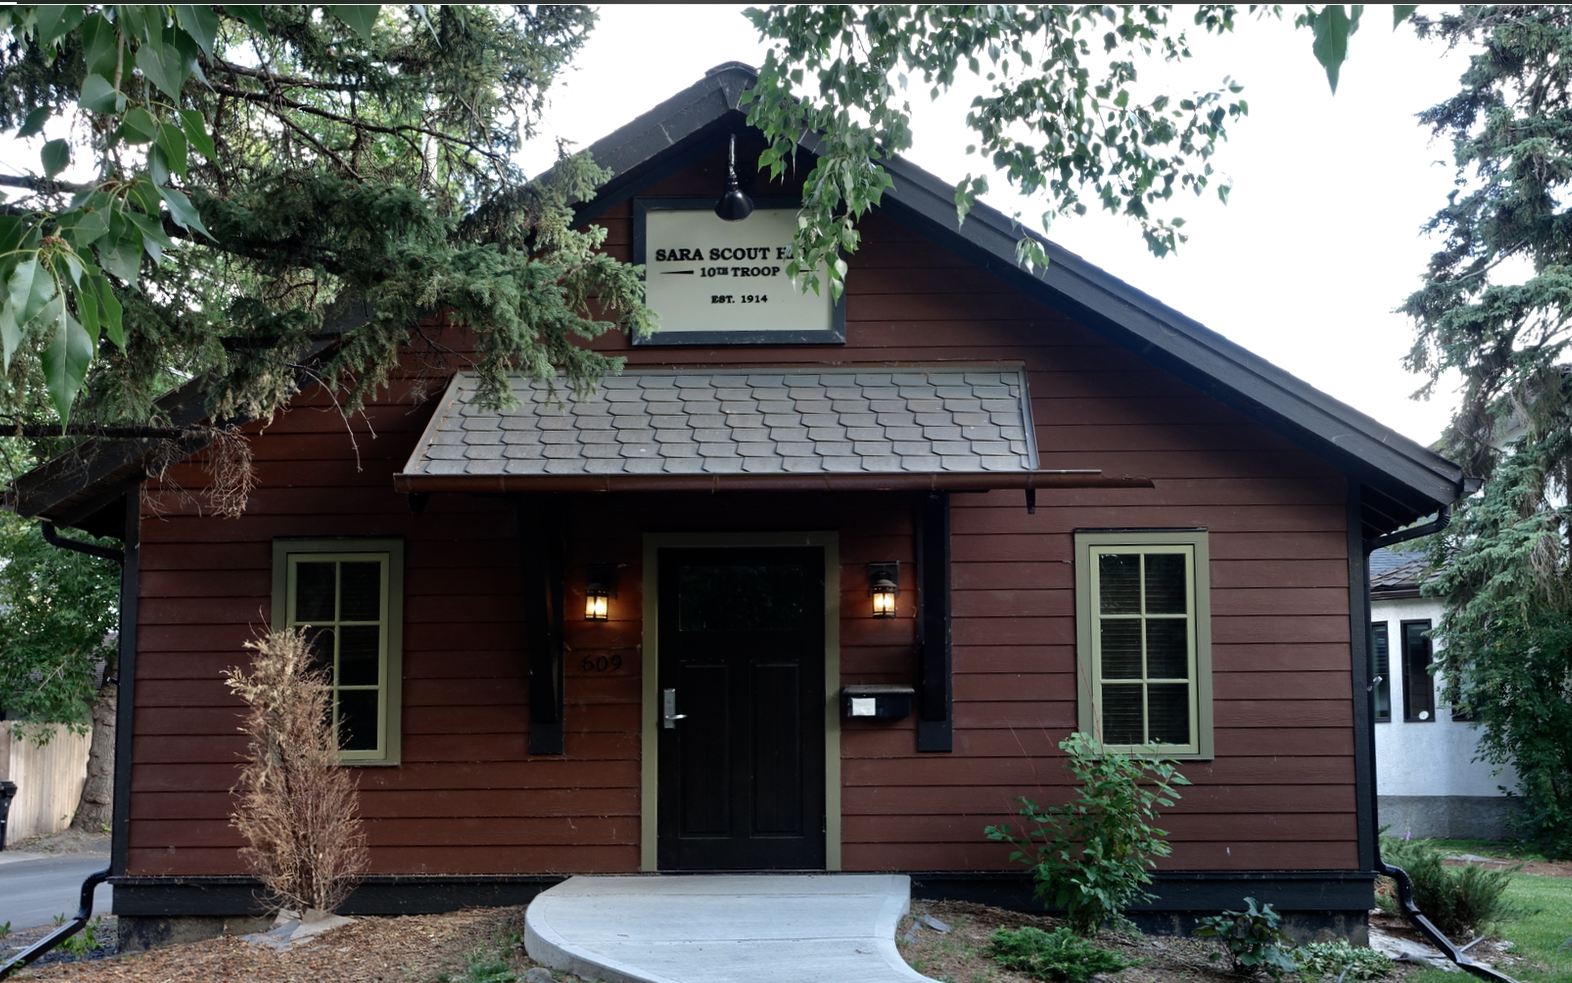 Fredric Sara brought scouting to Calgary. The Sara Scout Hall built in 1927, was heavily damaged in the 2013 flood, but has been restored. Link: History of Sara Scout Hall